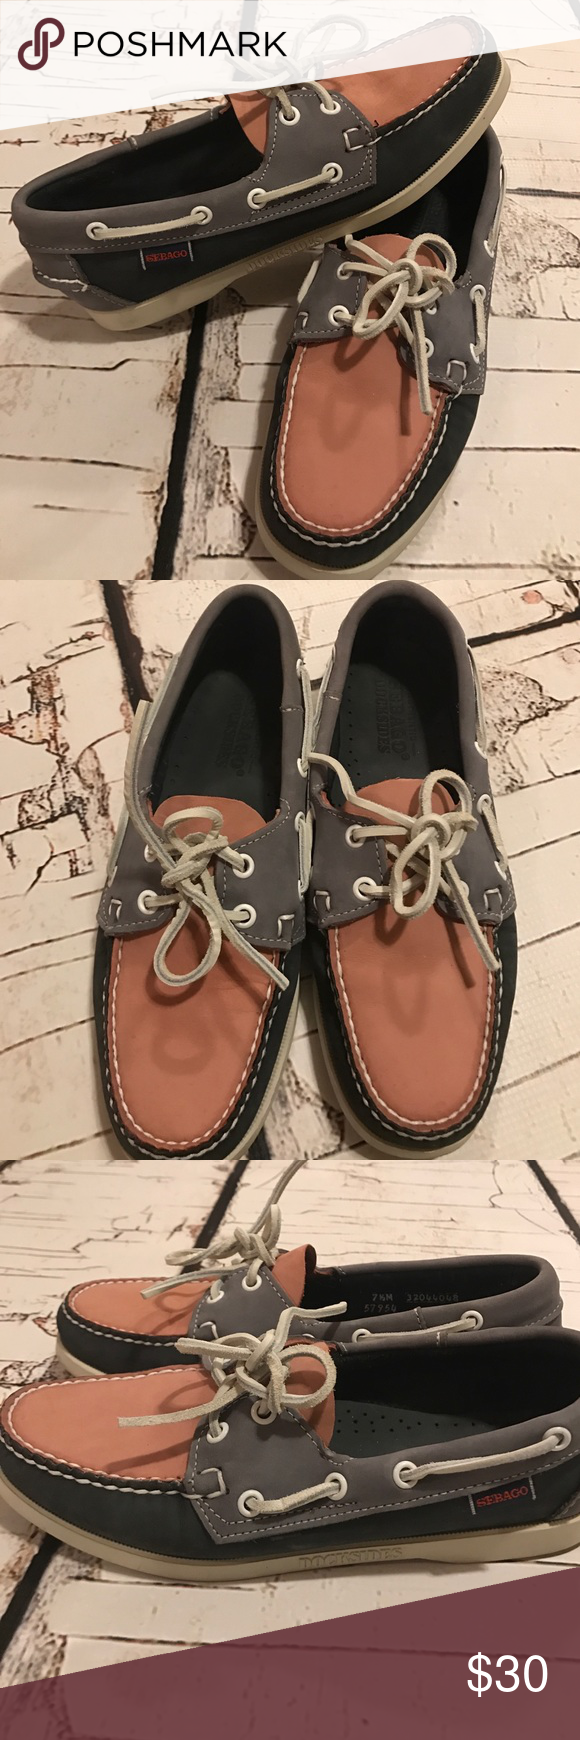 Like new sebego dockside boat shoes Super cute! Will clean them before shipping Sebago Shoes Mules & Clogs